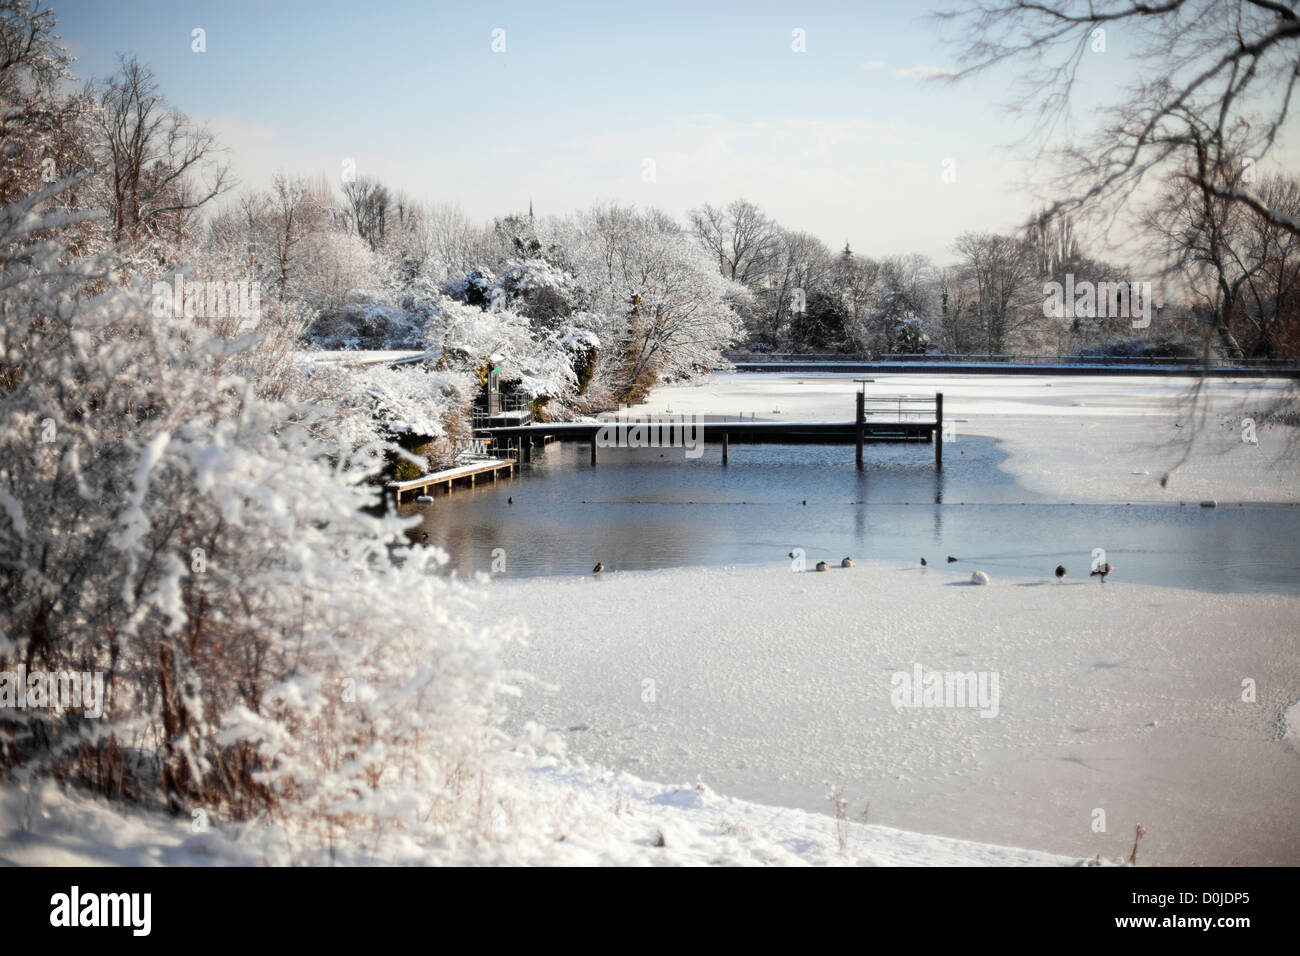 Ice and snow cover the men's bathing pond in winter. - Stock Image